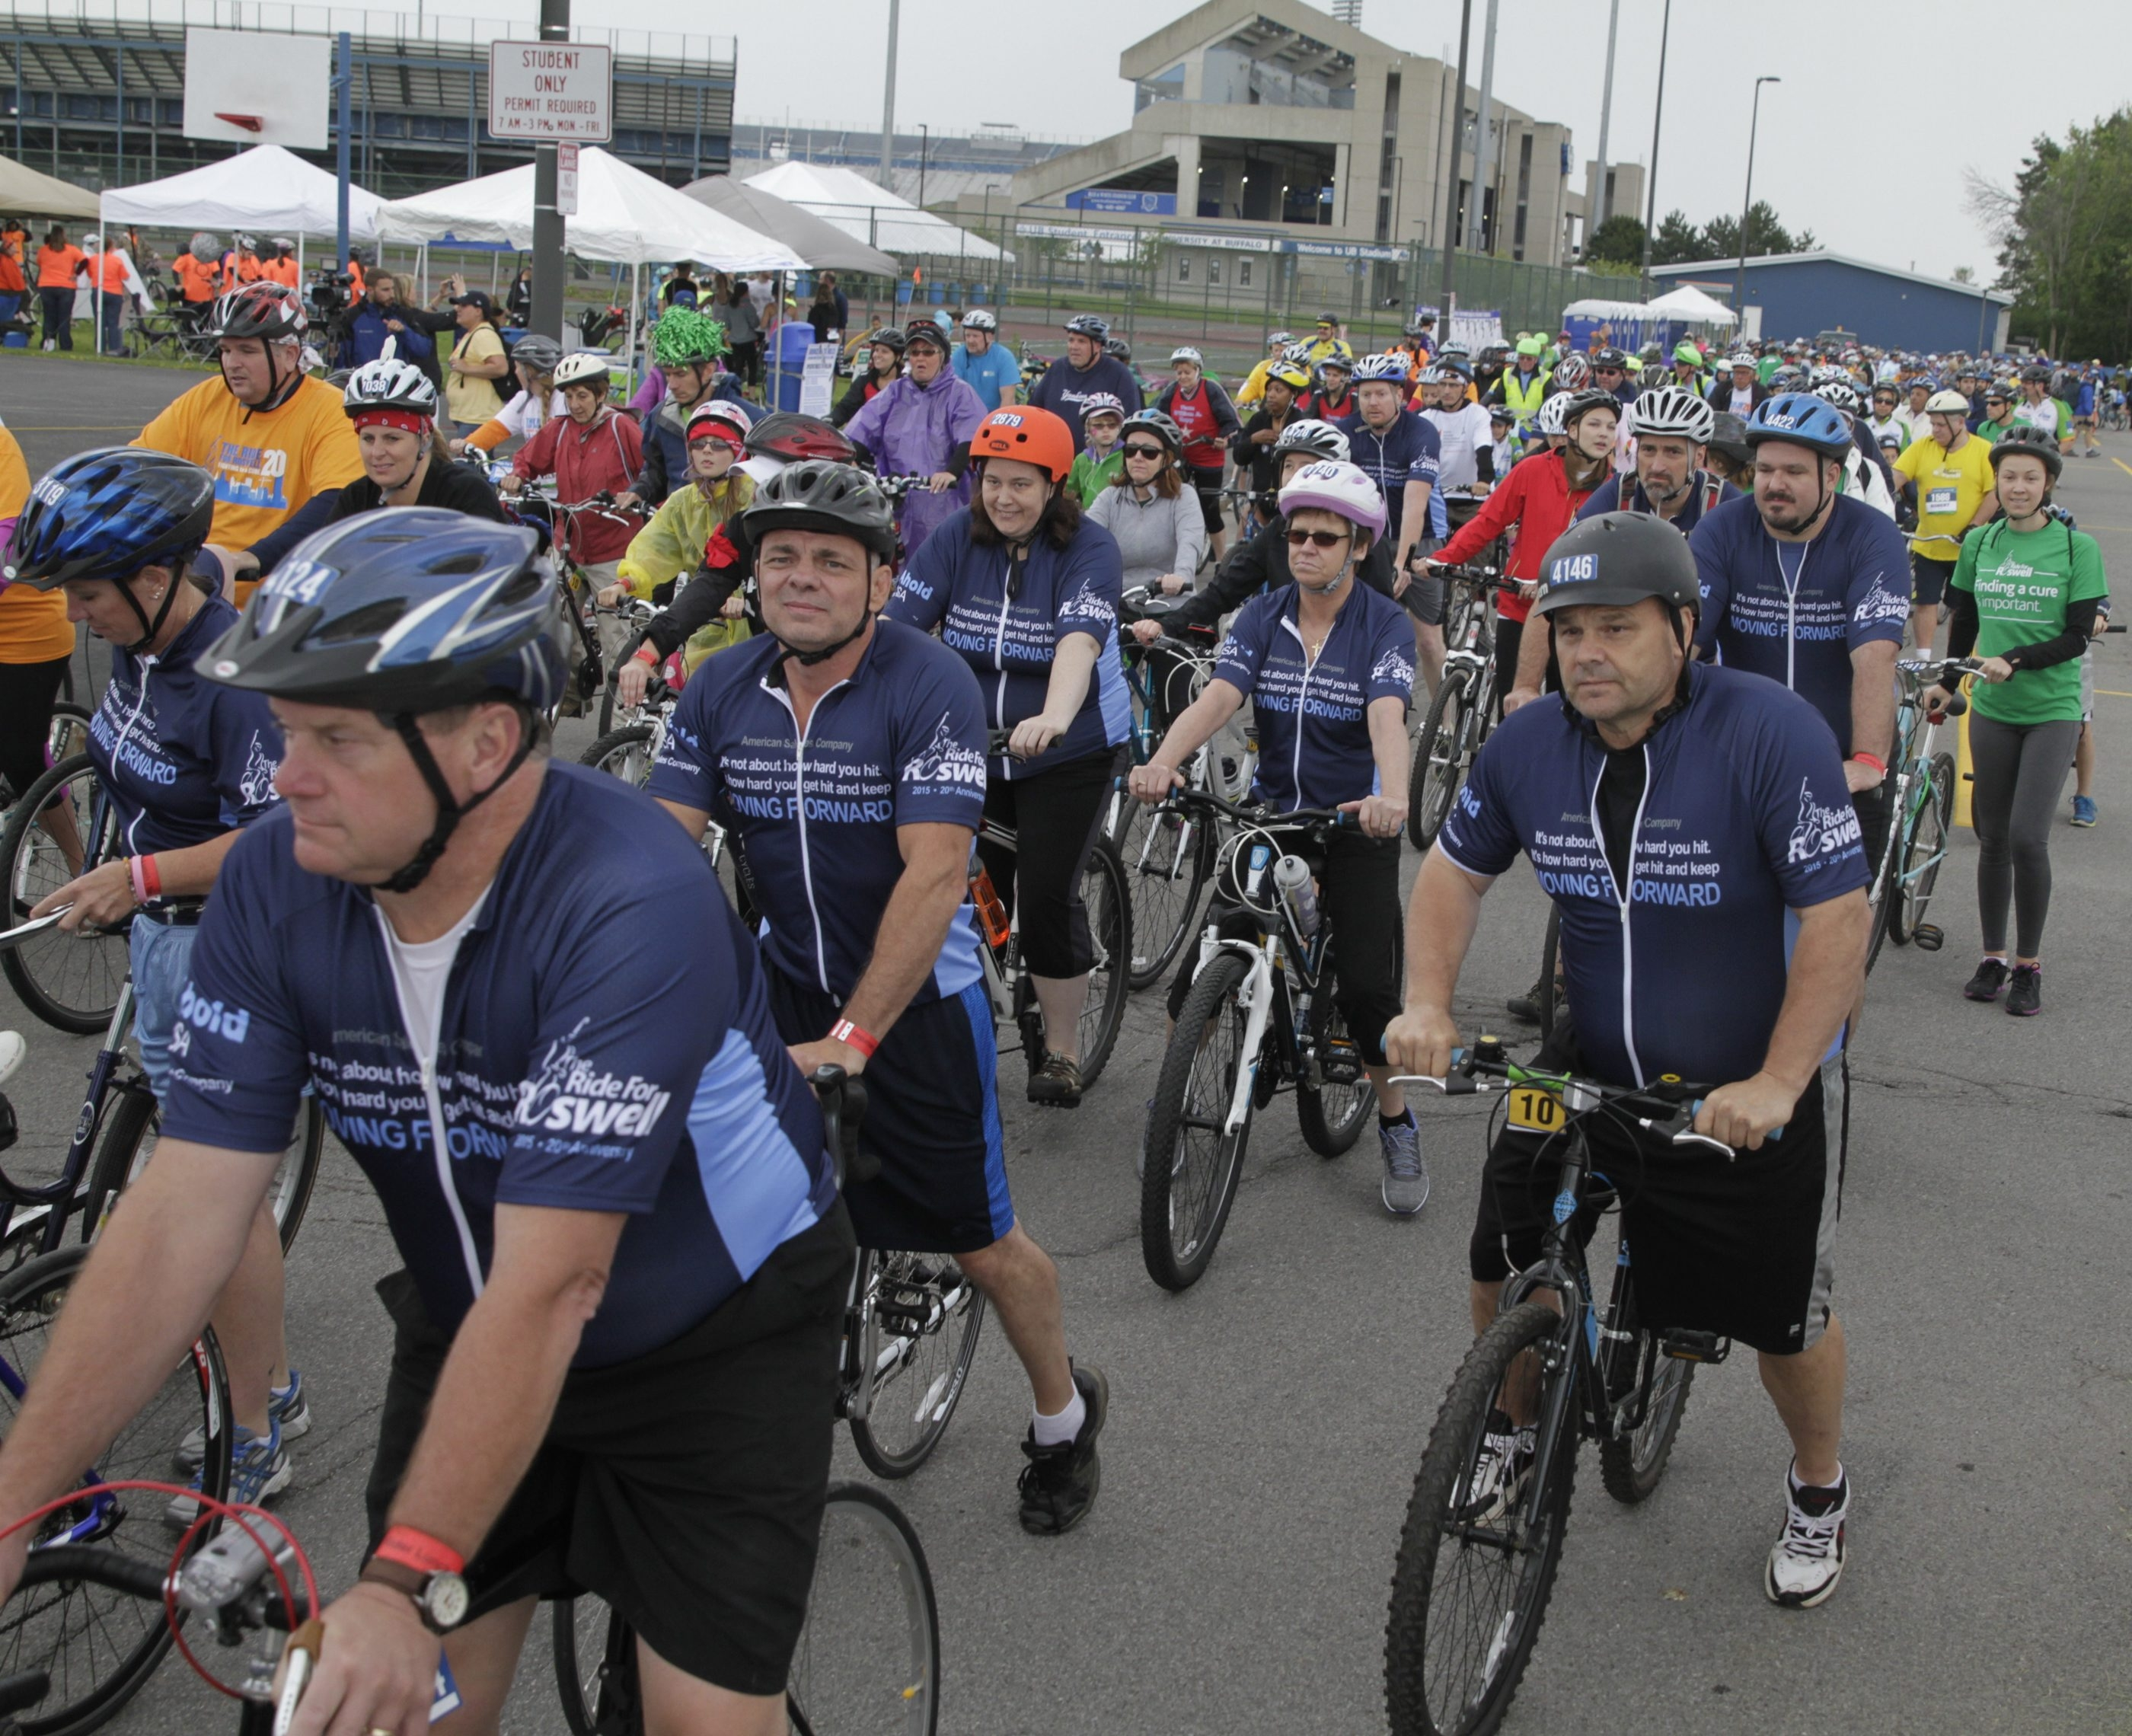 Participants queue up for the 10-mile portion of Ride for Roswell at UB's North Campus. About 8,200 participants and 2,000 volunteers raised more than $4.5 million to support cancer research and patient care programs at Roswell Park Cancer Institute.